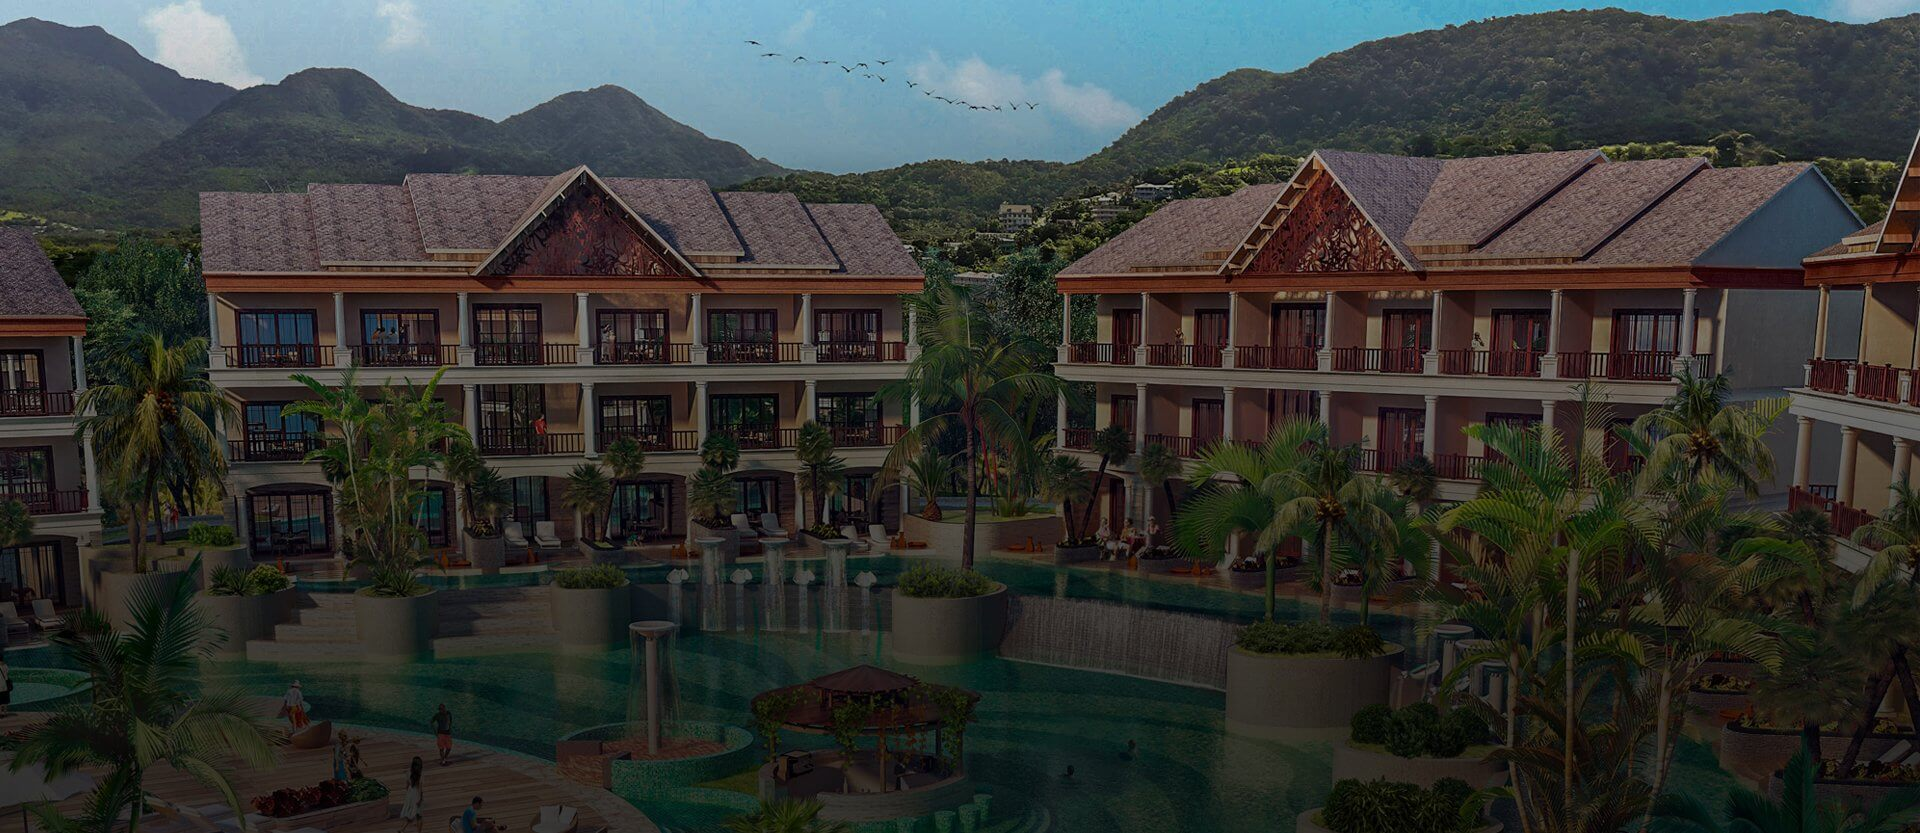 Real Estate: Anichi Resort & Bar